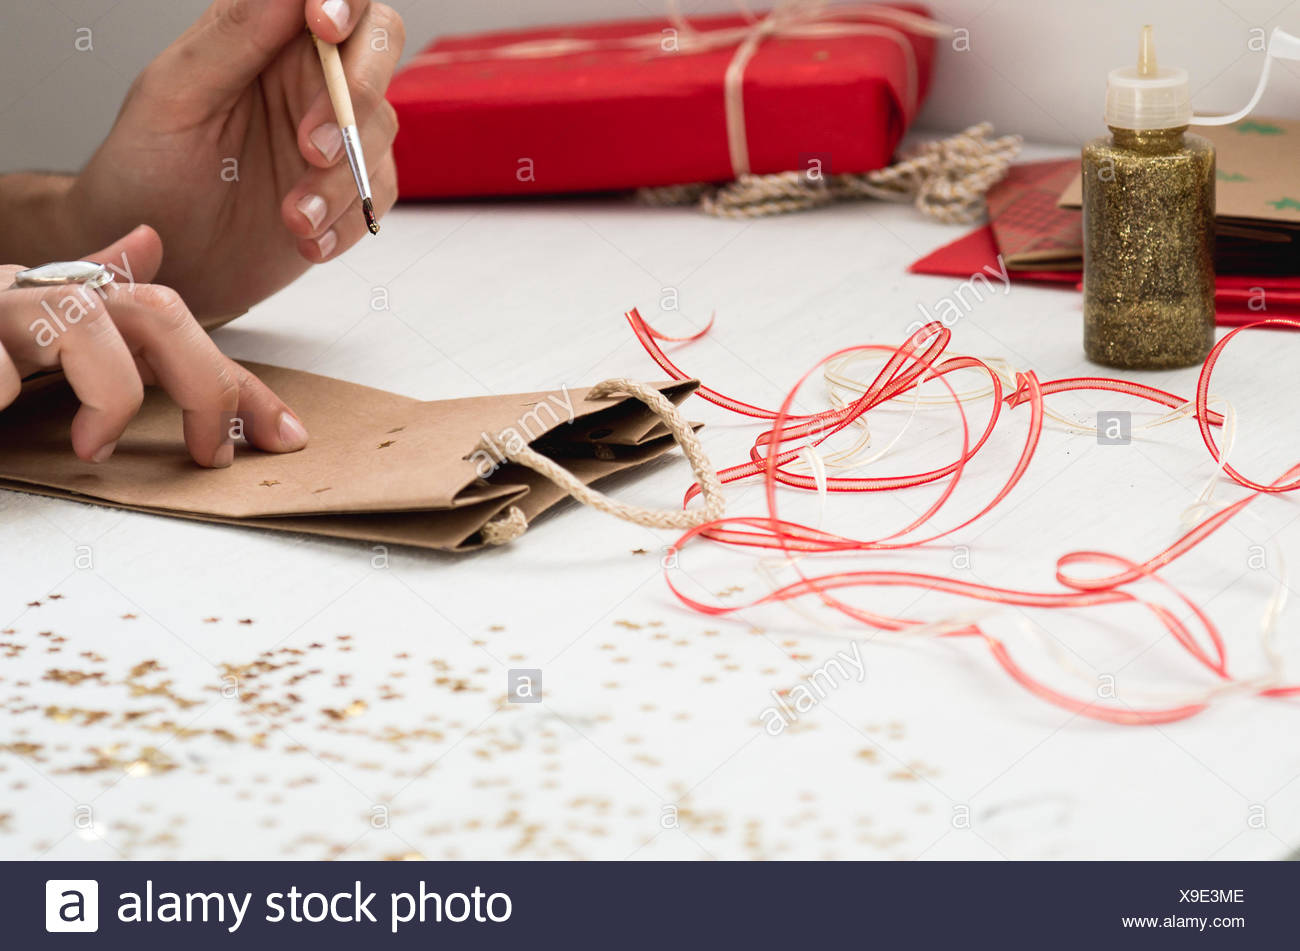 Cropped Image Of Hand Decorating Paper Bag On Table - Stock Image